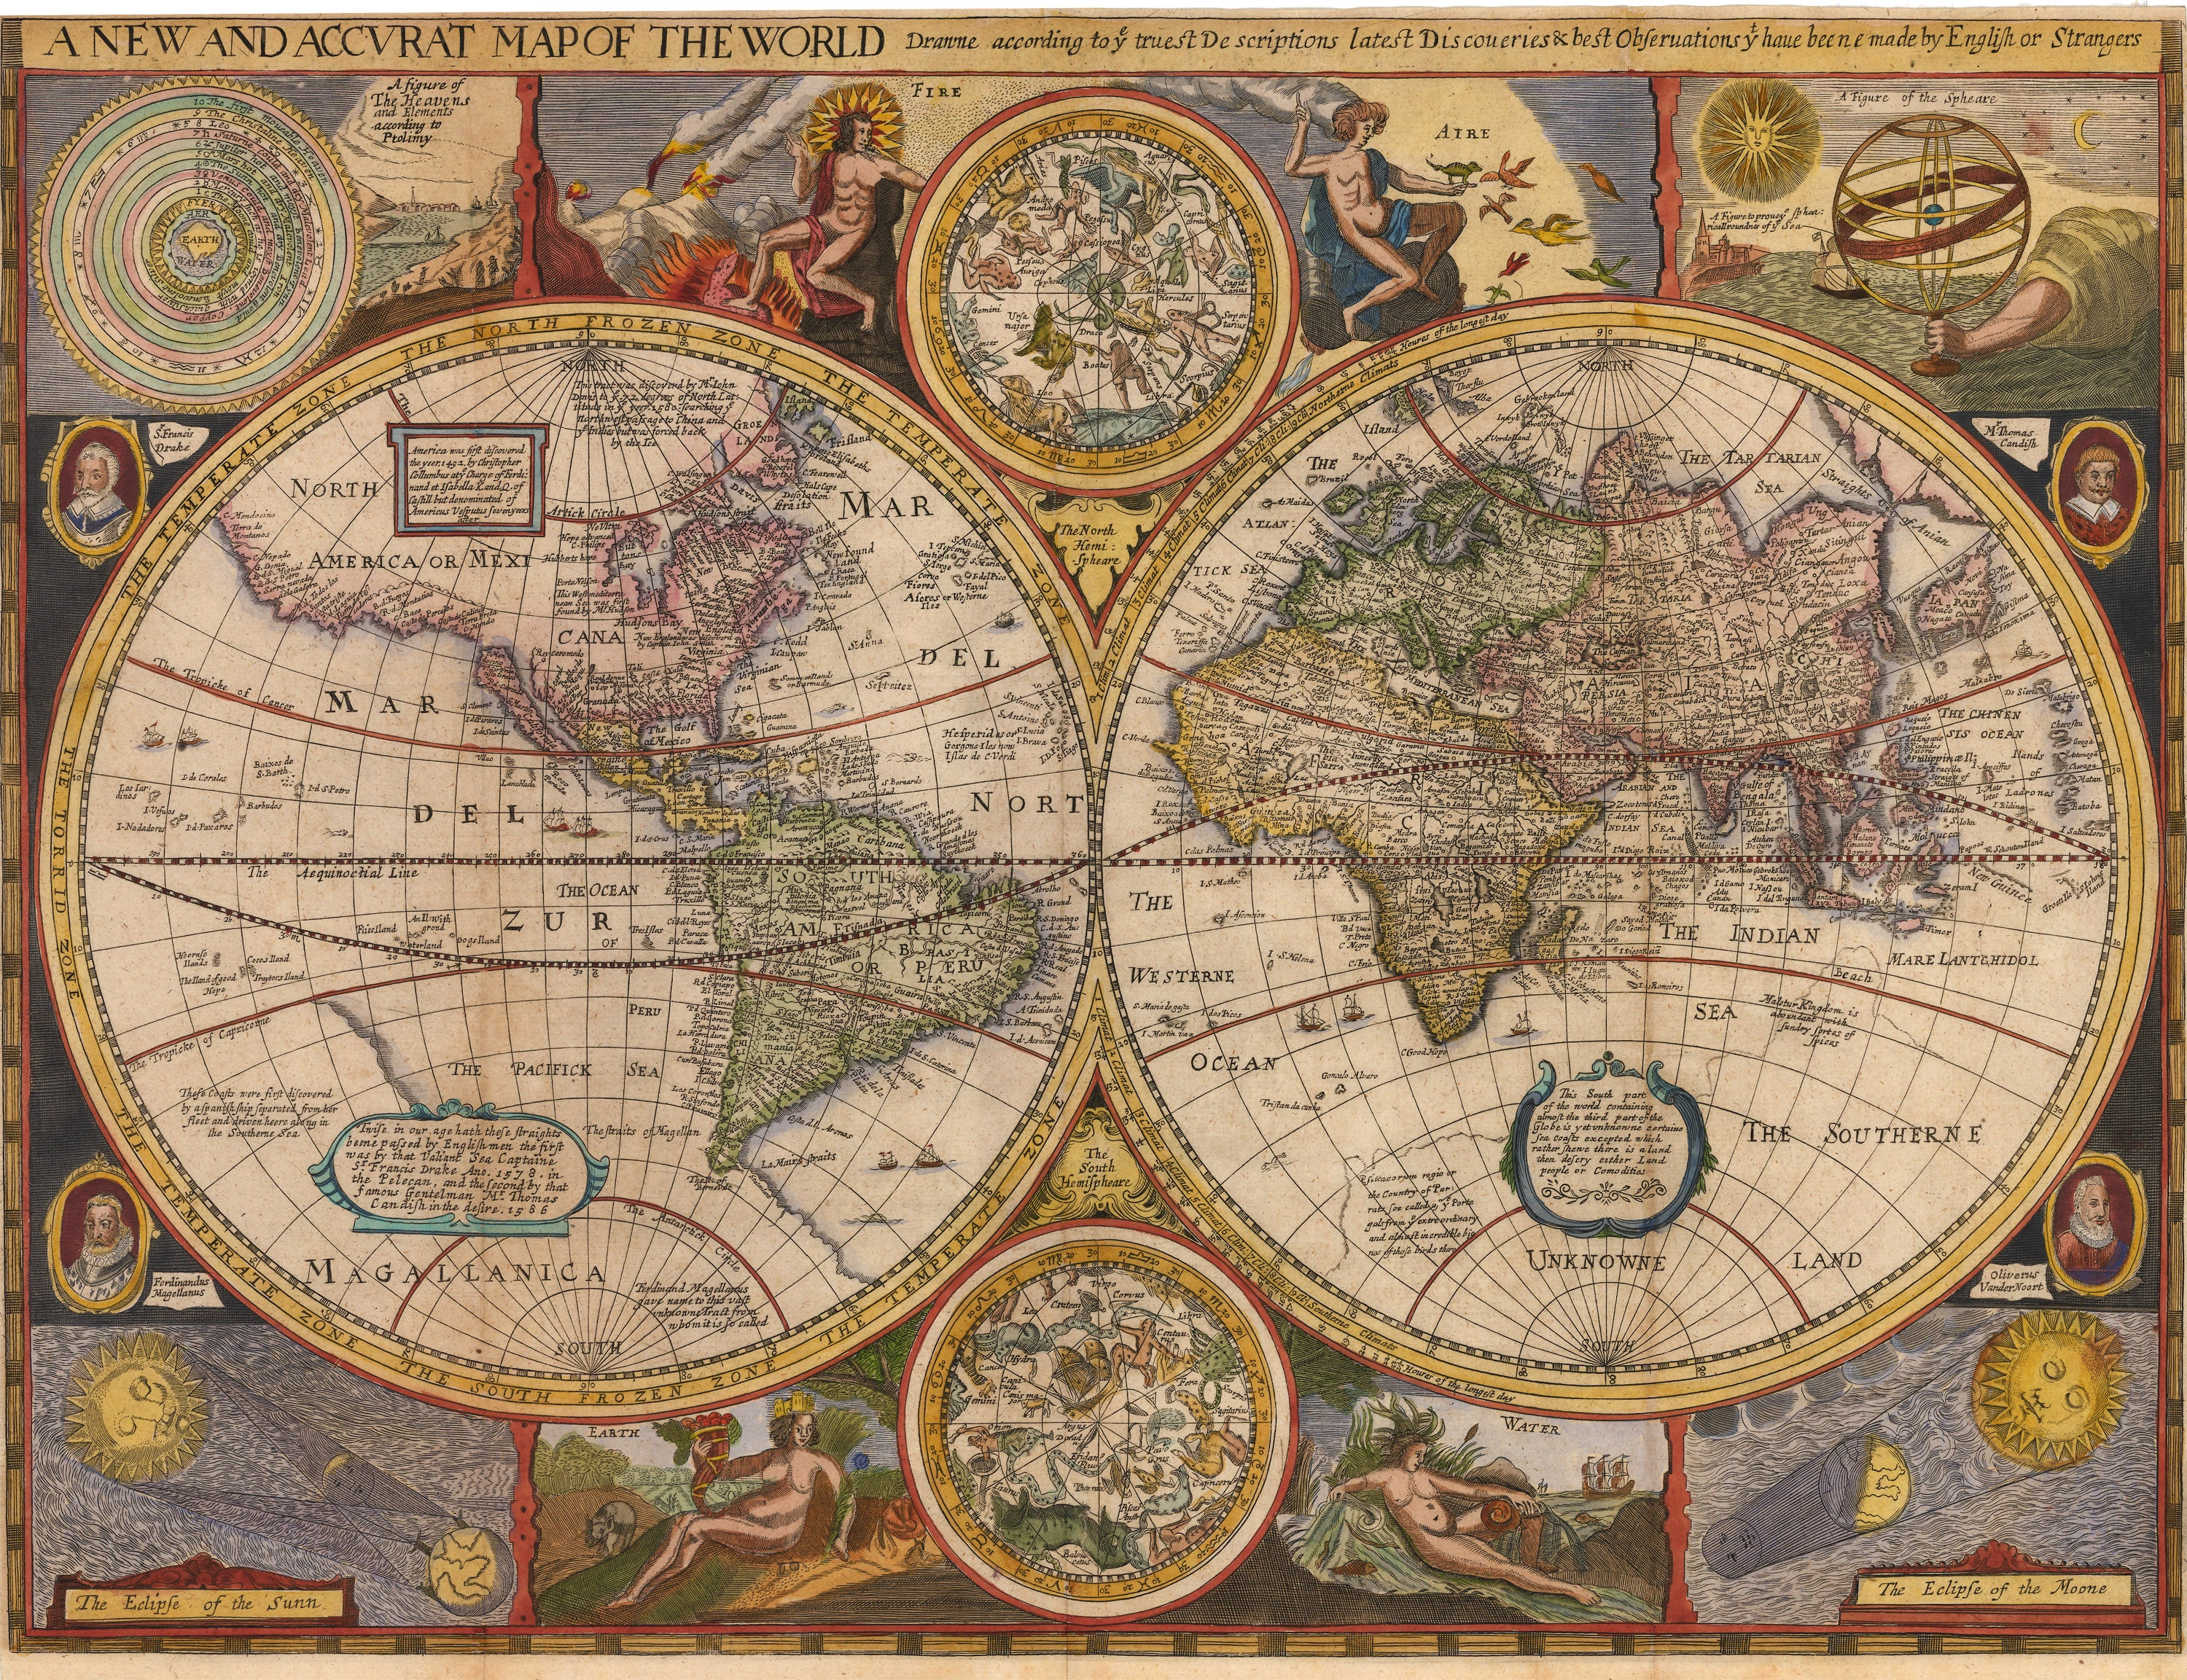 Antique Map of the World w/ California as an Island 1659 By: Robert Walton : nwcartographic.com